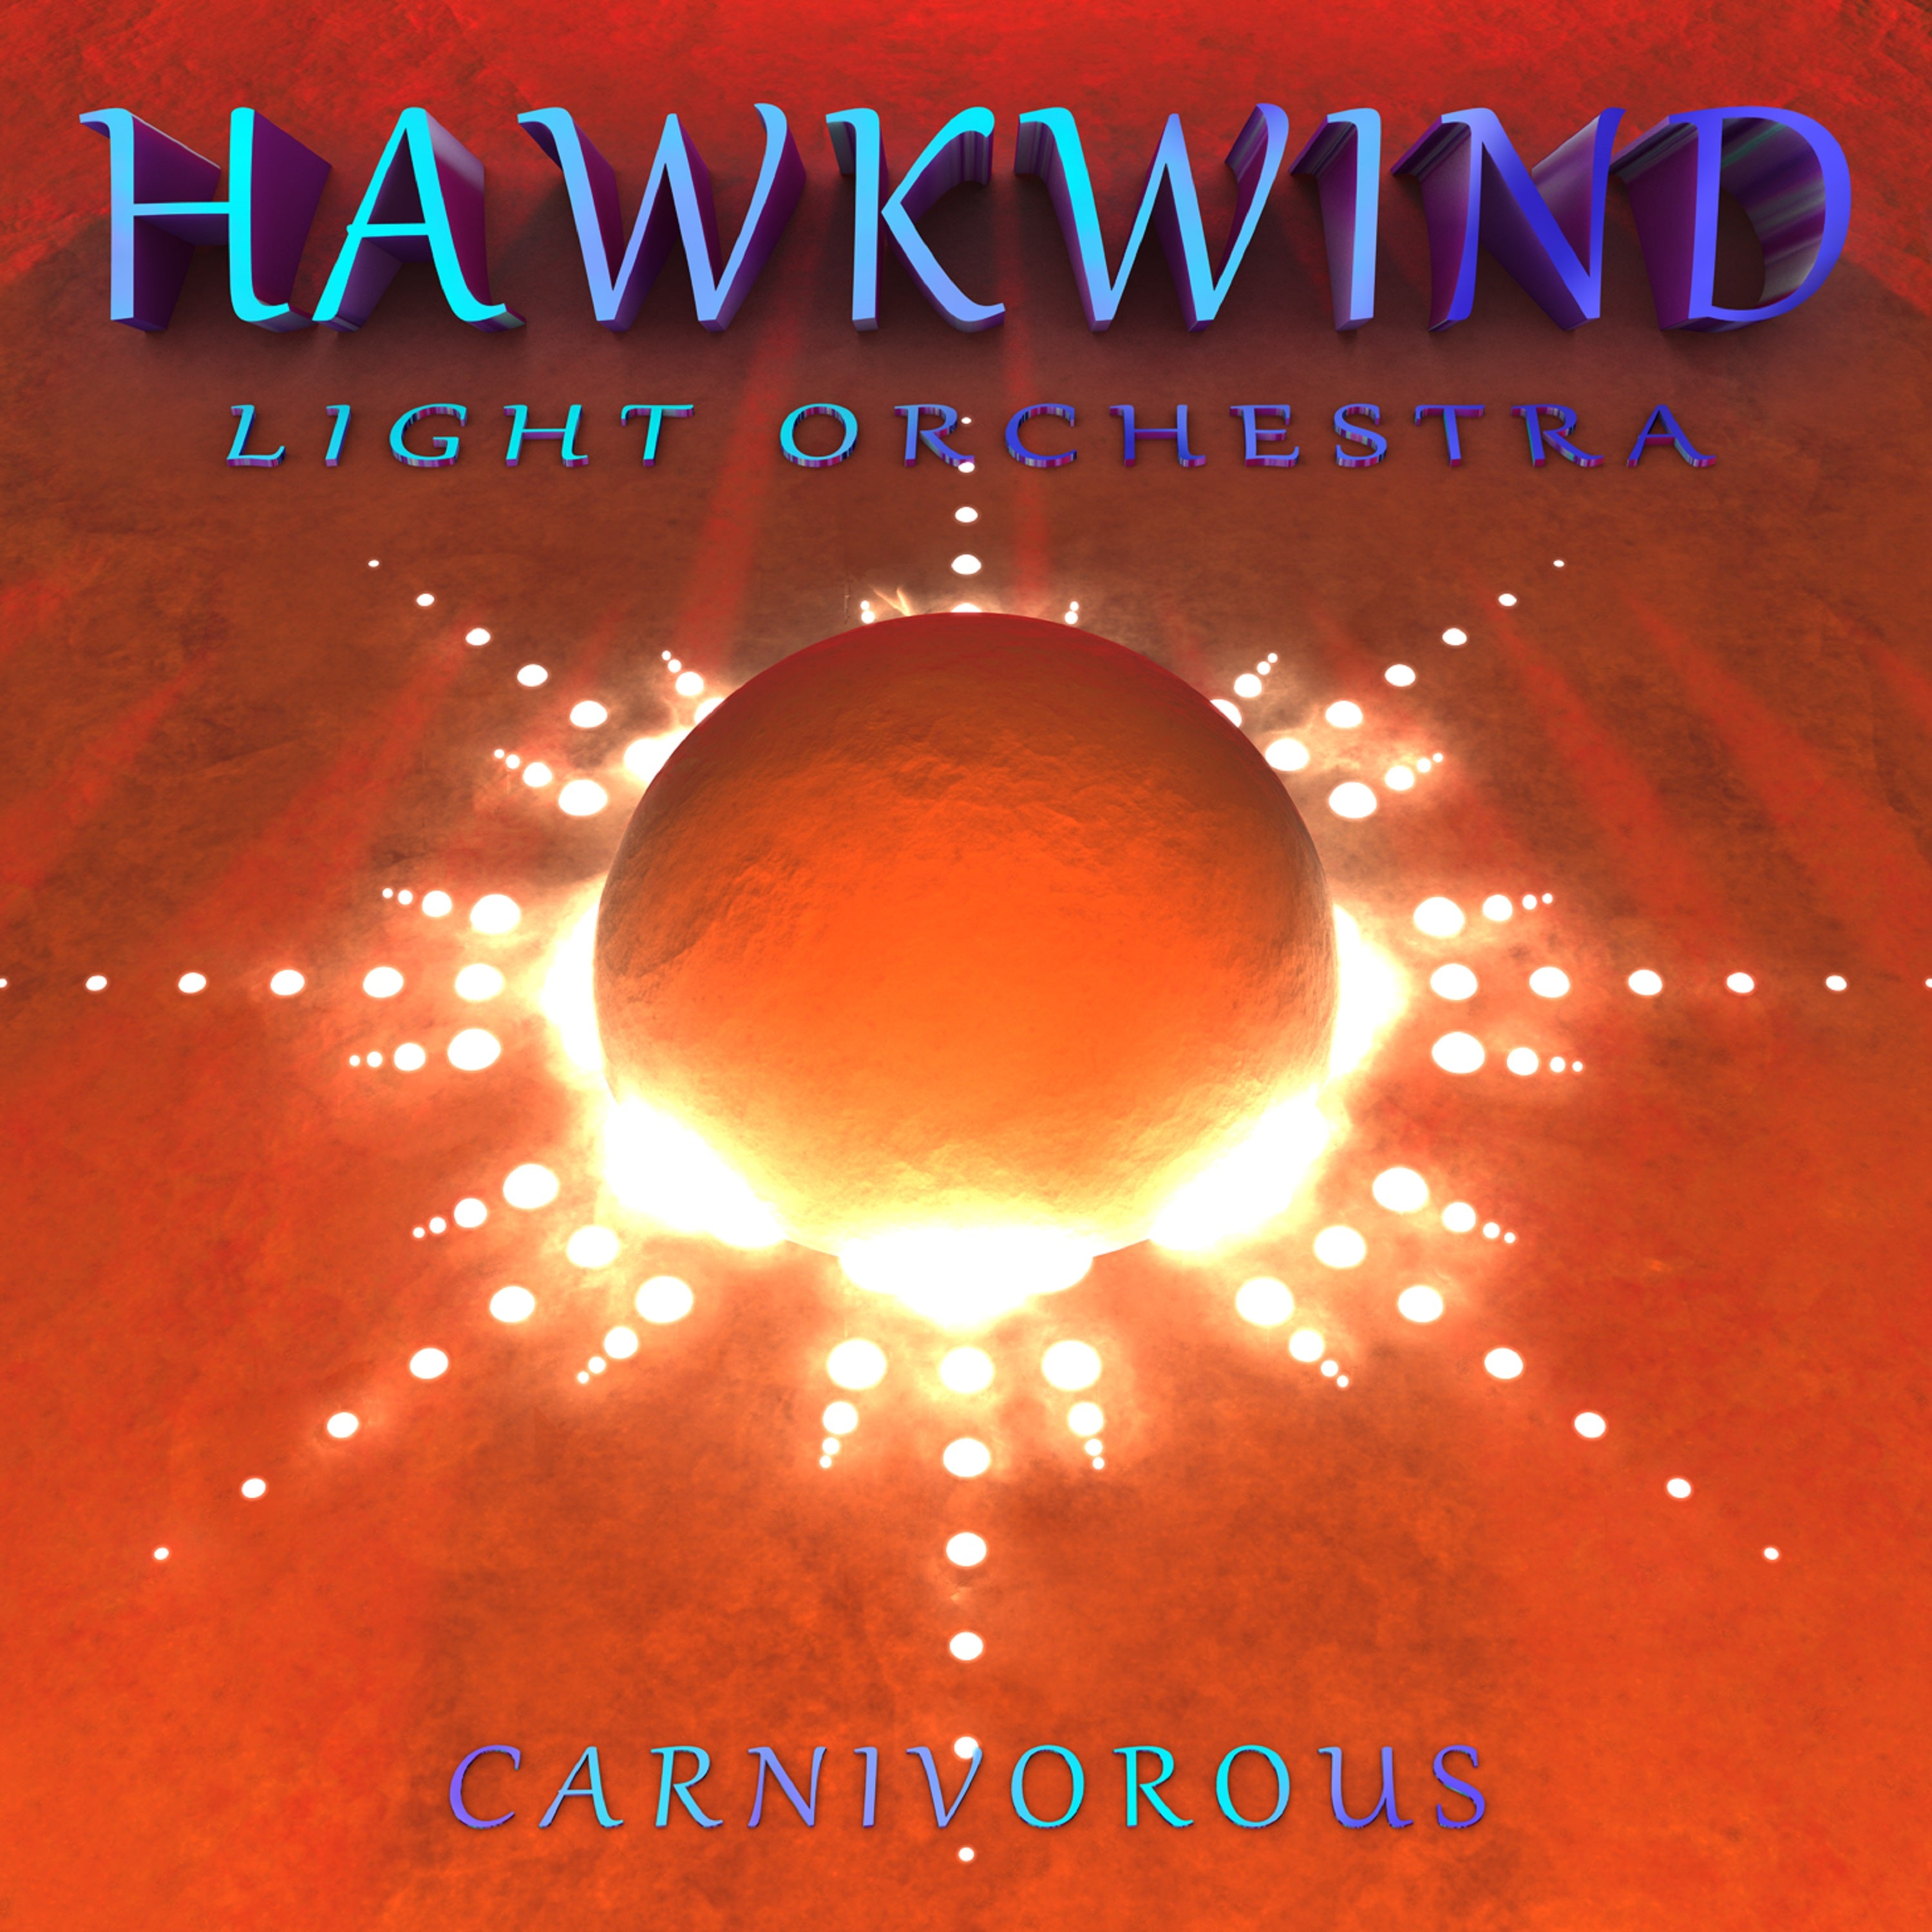 Hawkwind Light Orchestra ‎– Carnivorous 2LP Vinyl Record Album